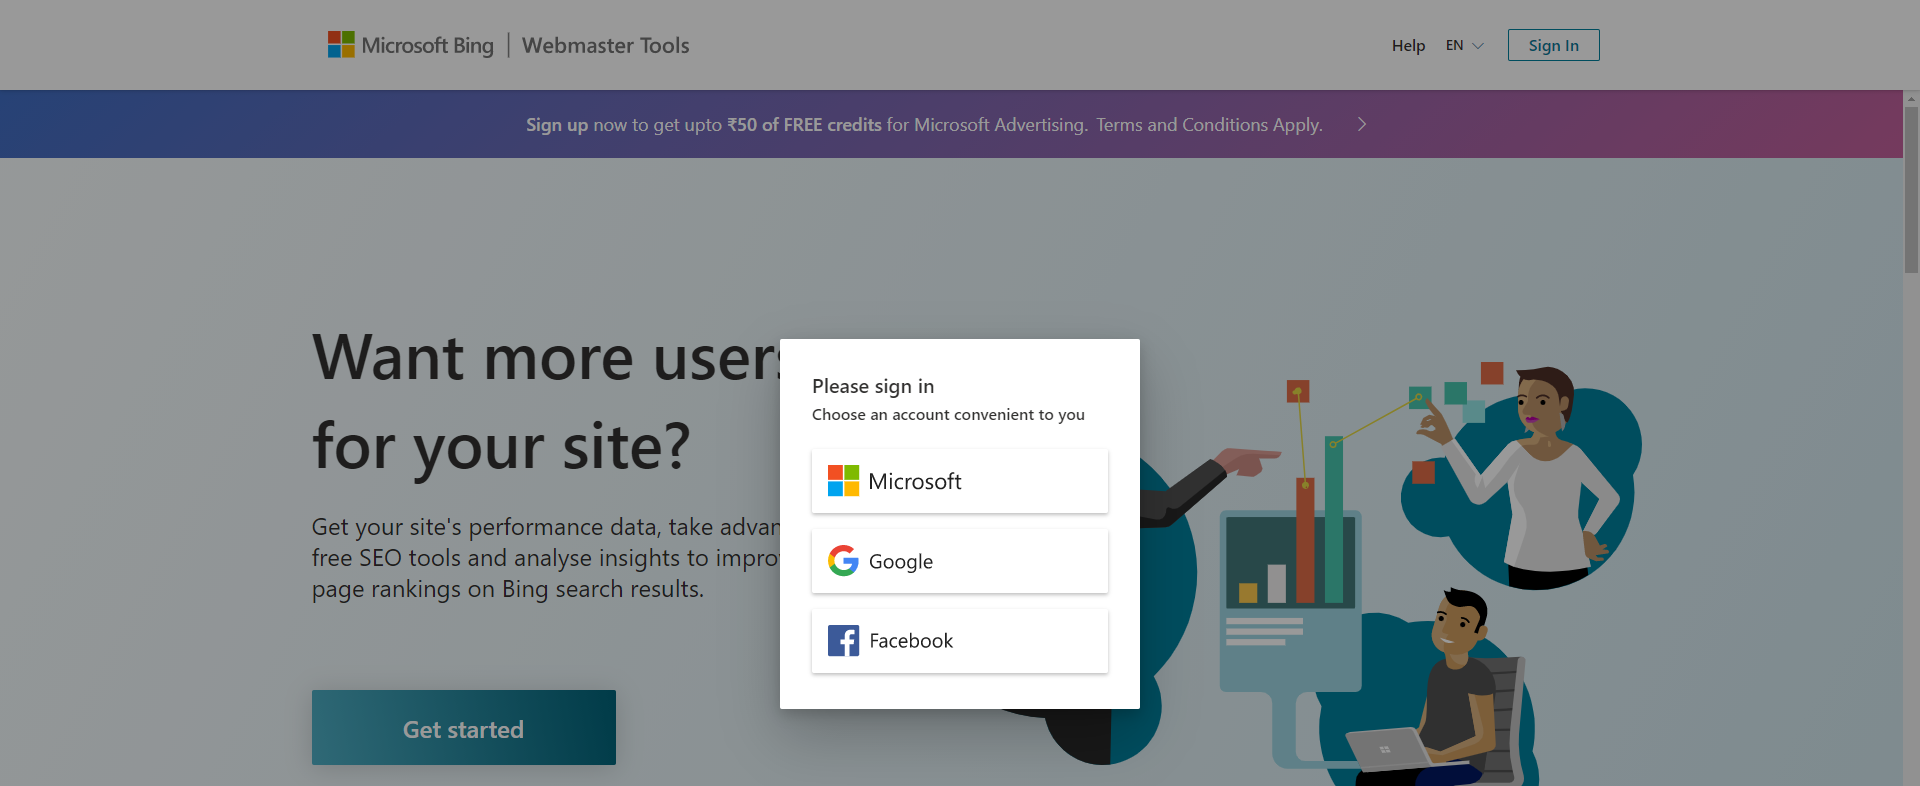 Provide your Bing Webmaster account User Id and Password